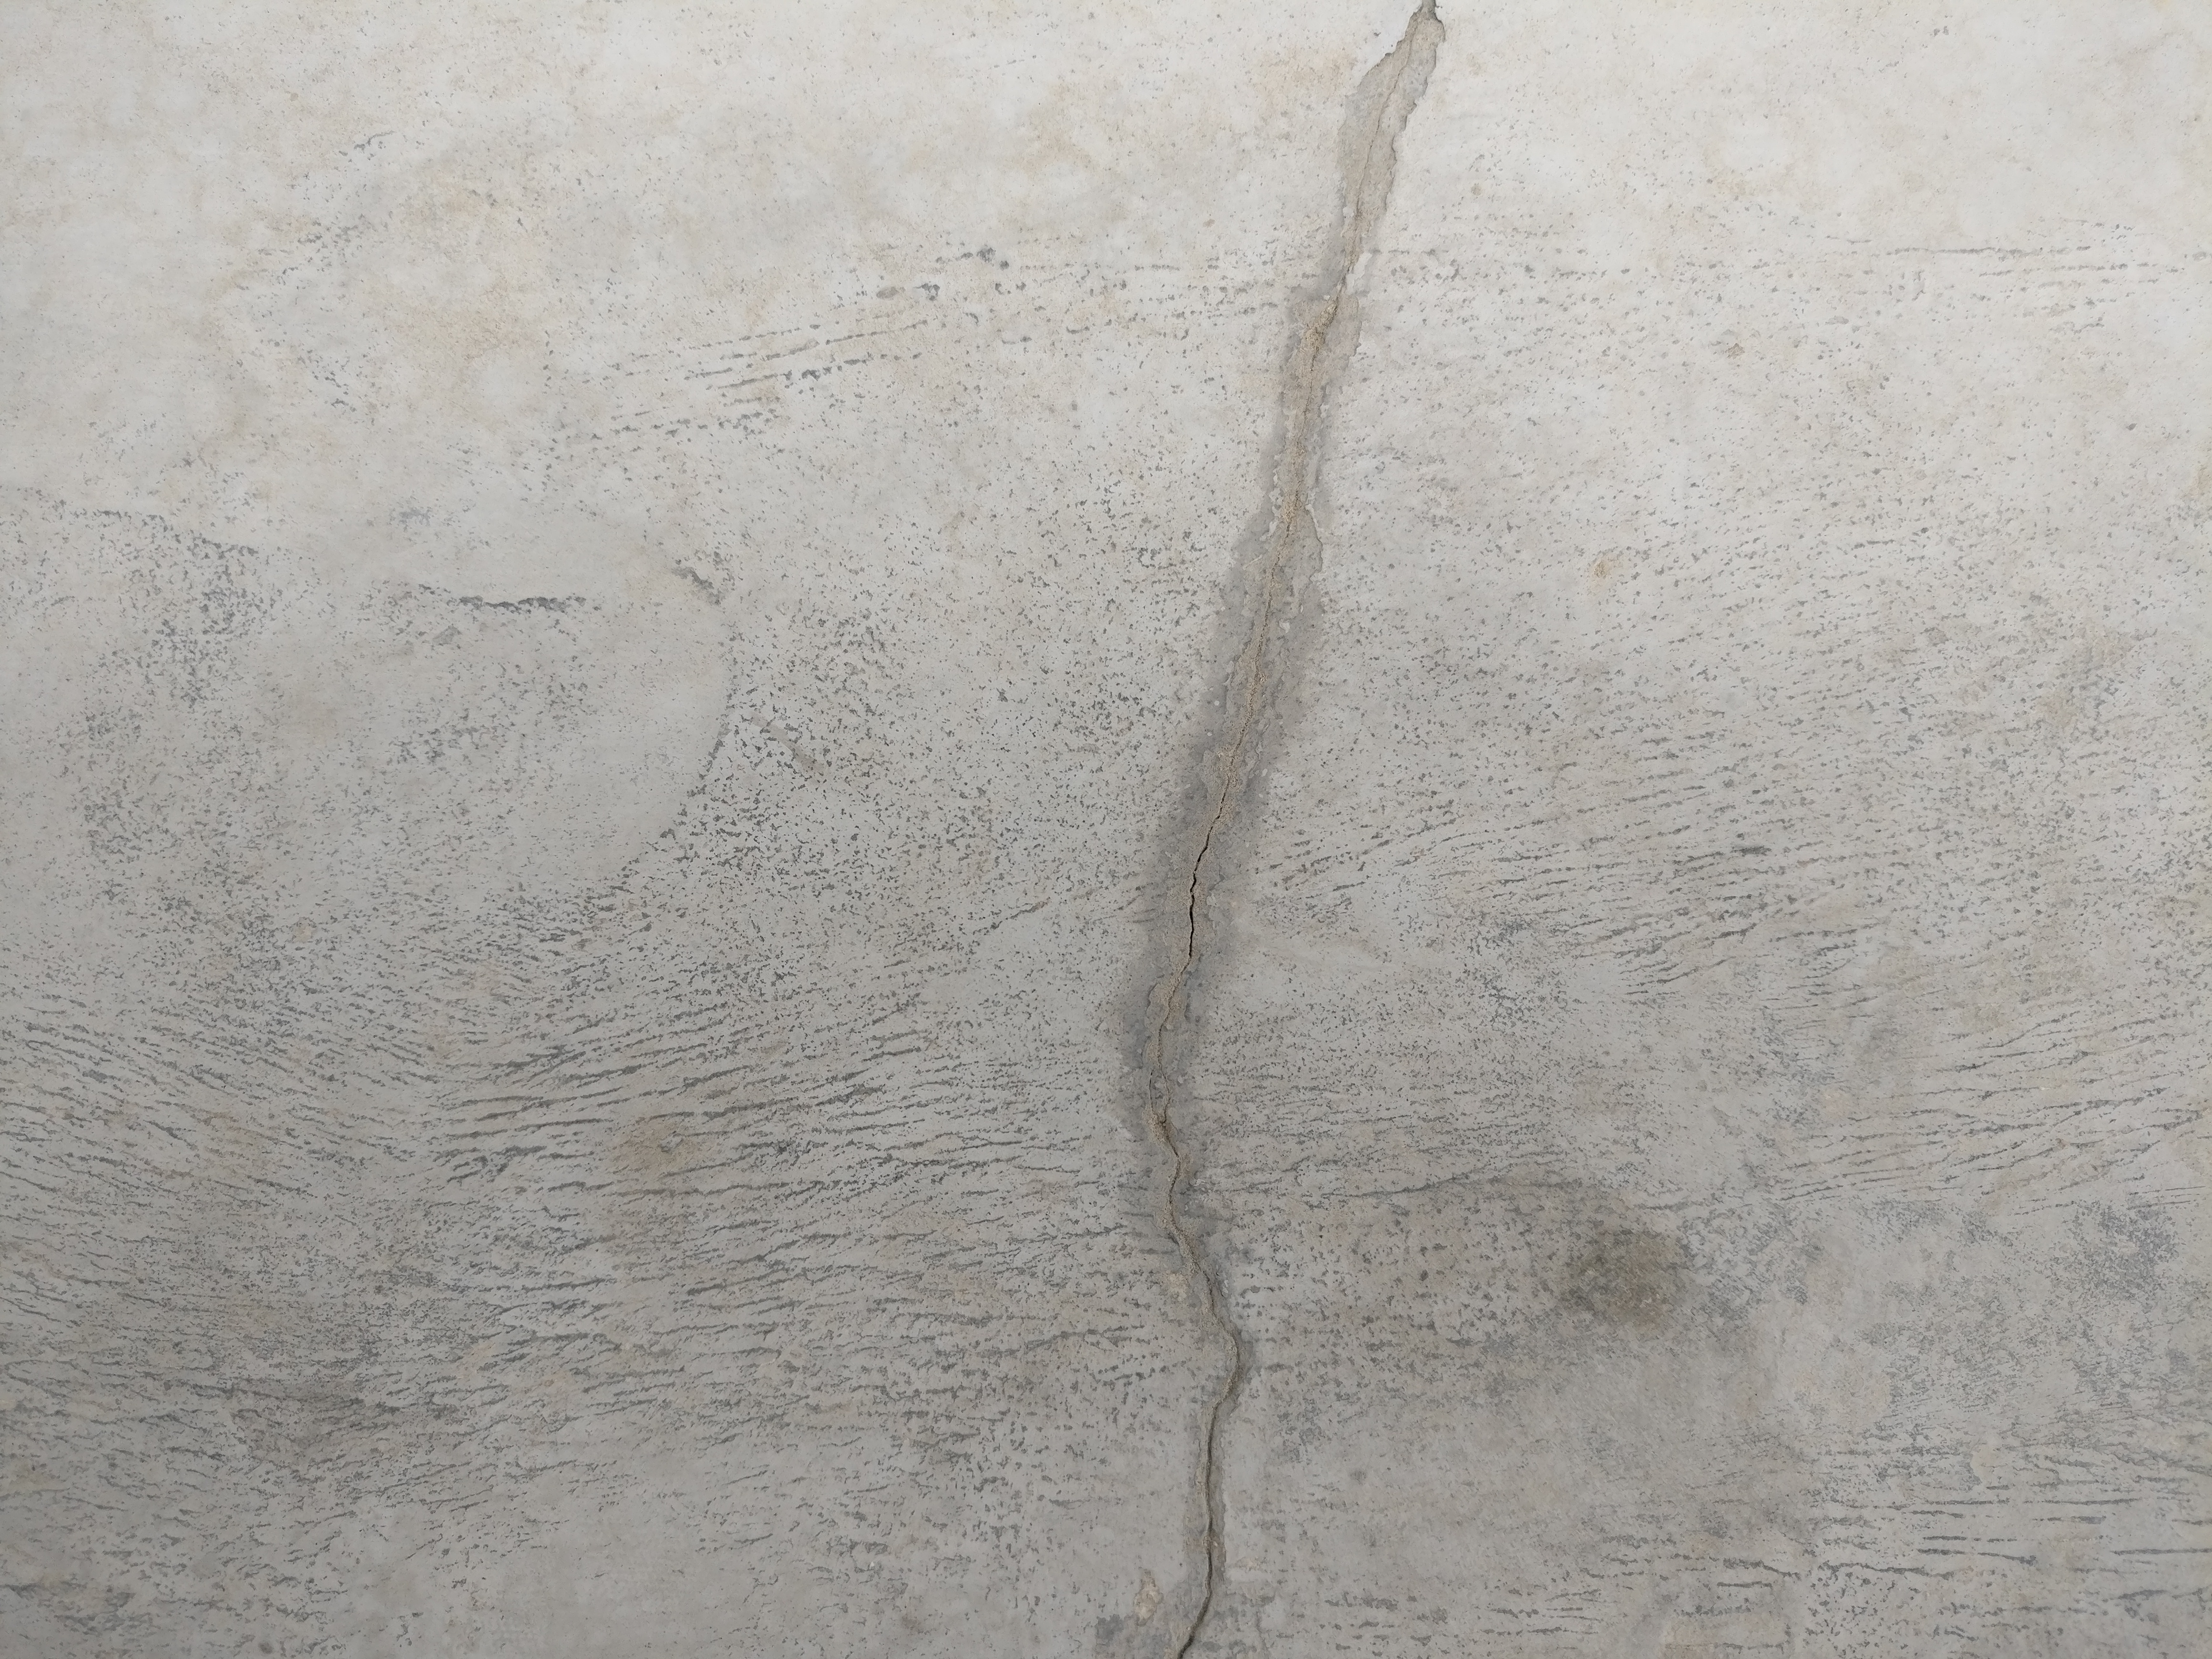 A Settlement crack after repair